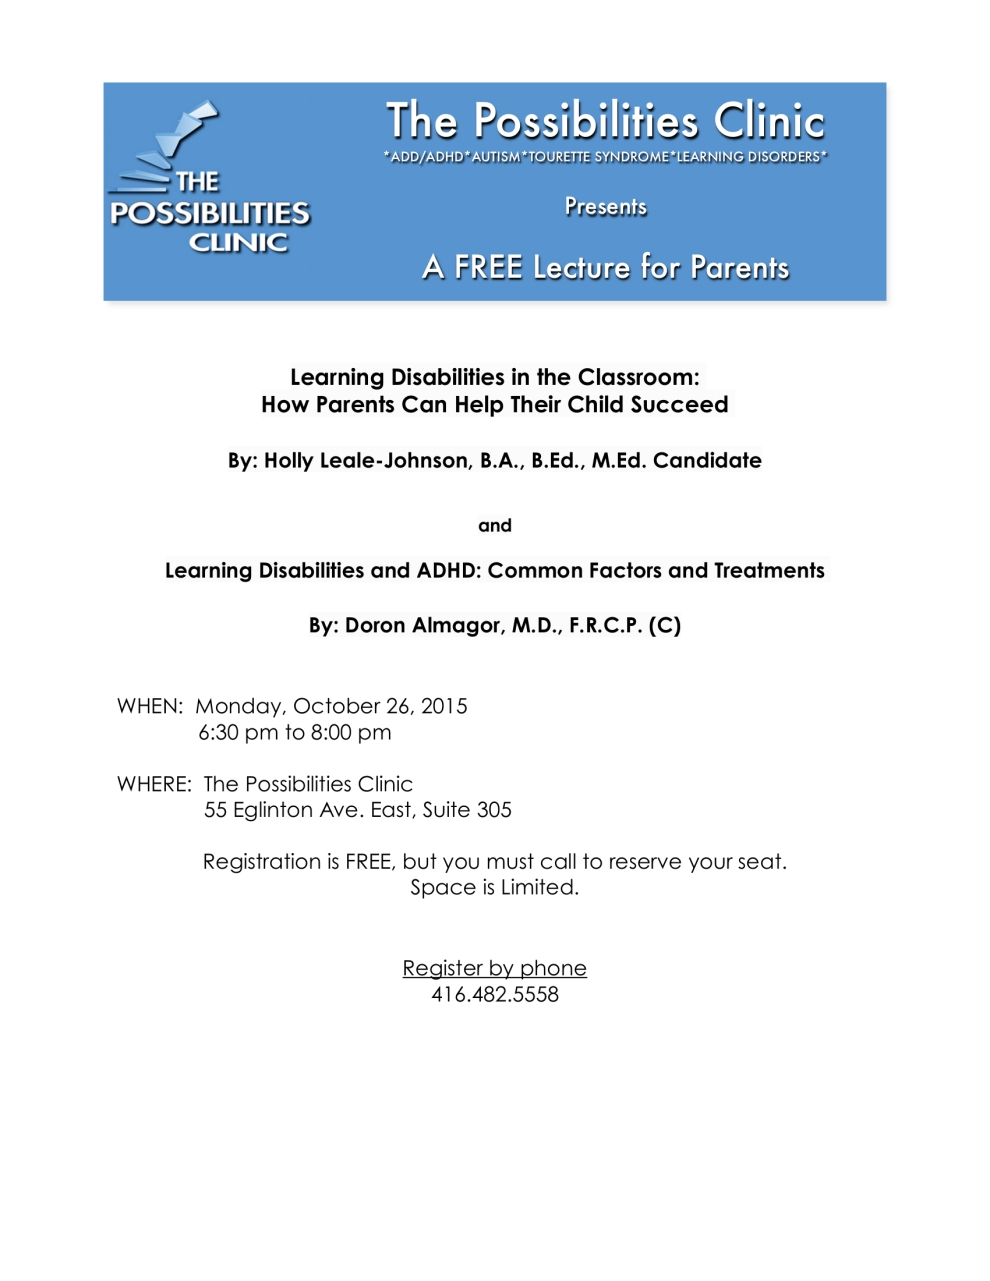 Learning Disabilities in the Classroom: How Parents Can Help Their Child Succeed; Oct 26, 2015